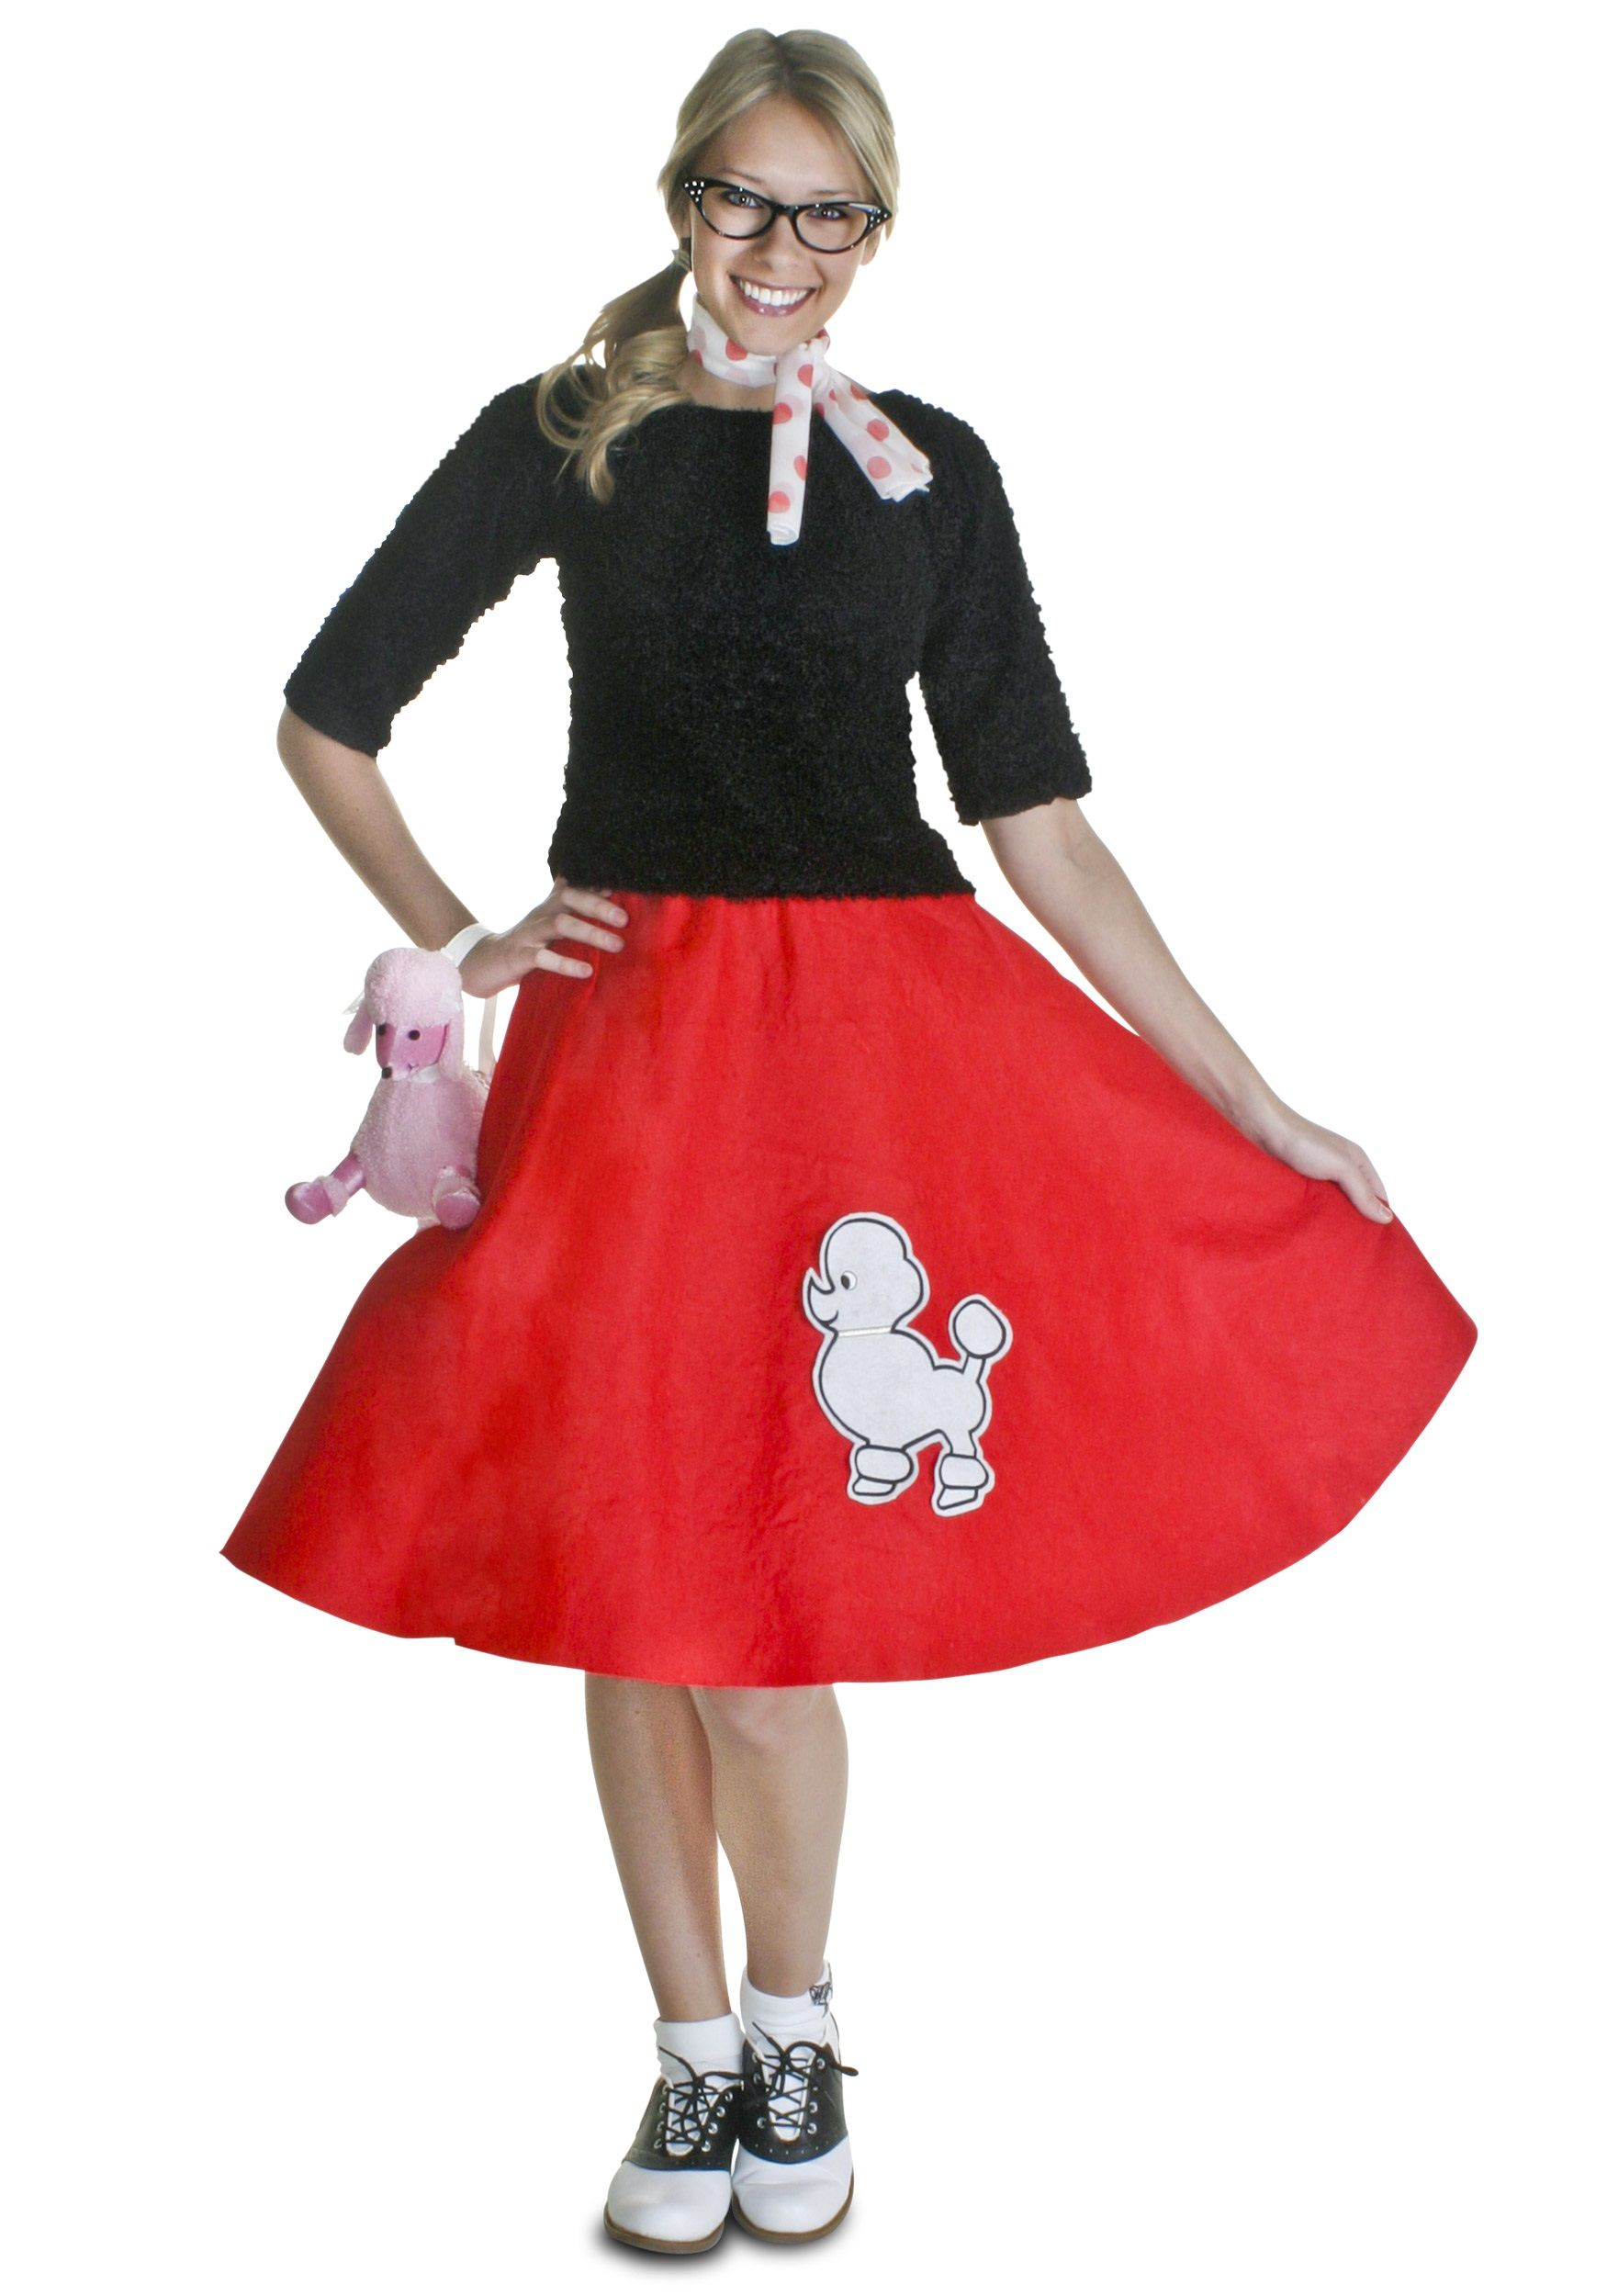 2019 year looks- 50s poodle hairstyles skirt photo